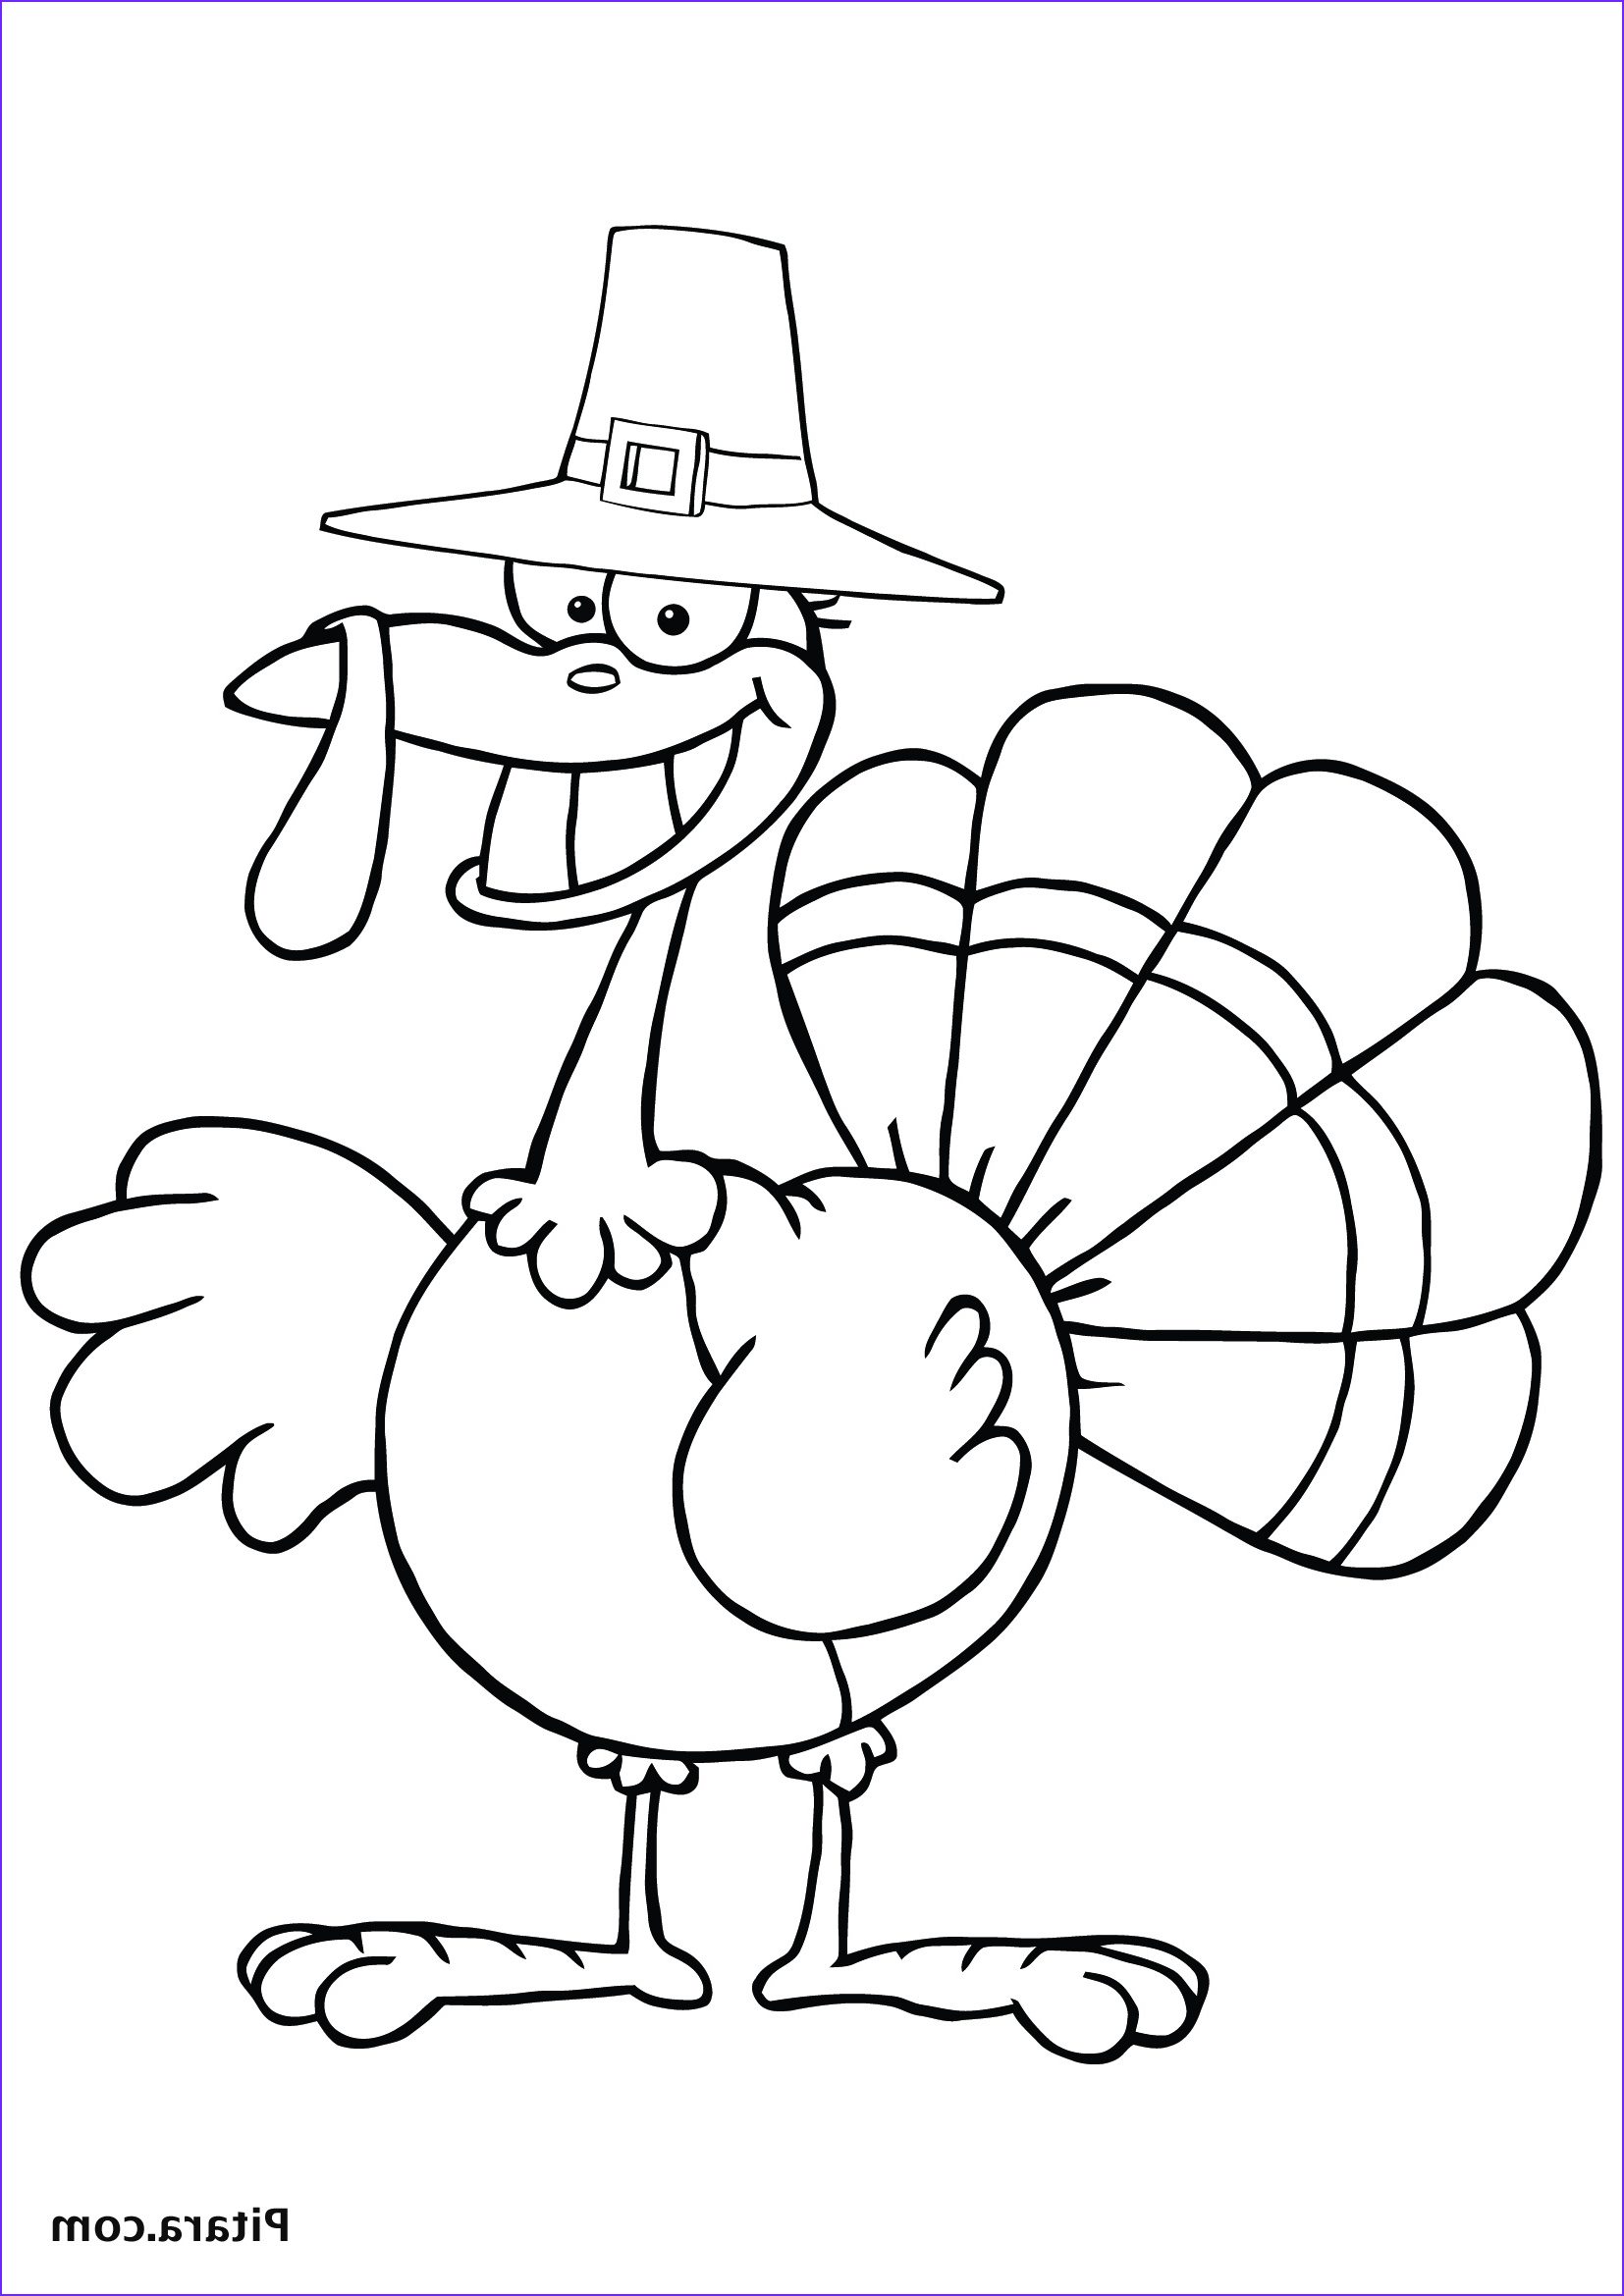 Turkey Coloring Pictures Awesome Image Turkey Coloring Pages for Kids